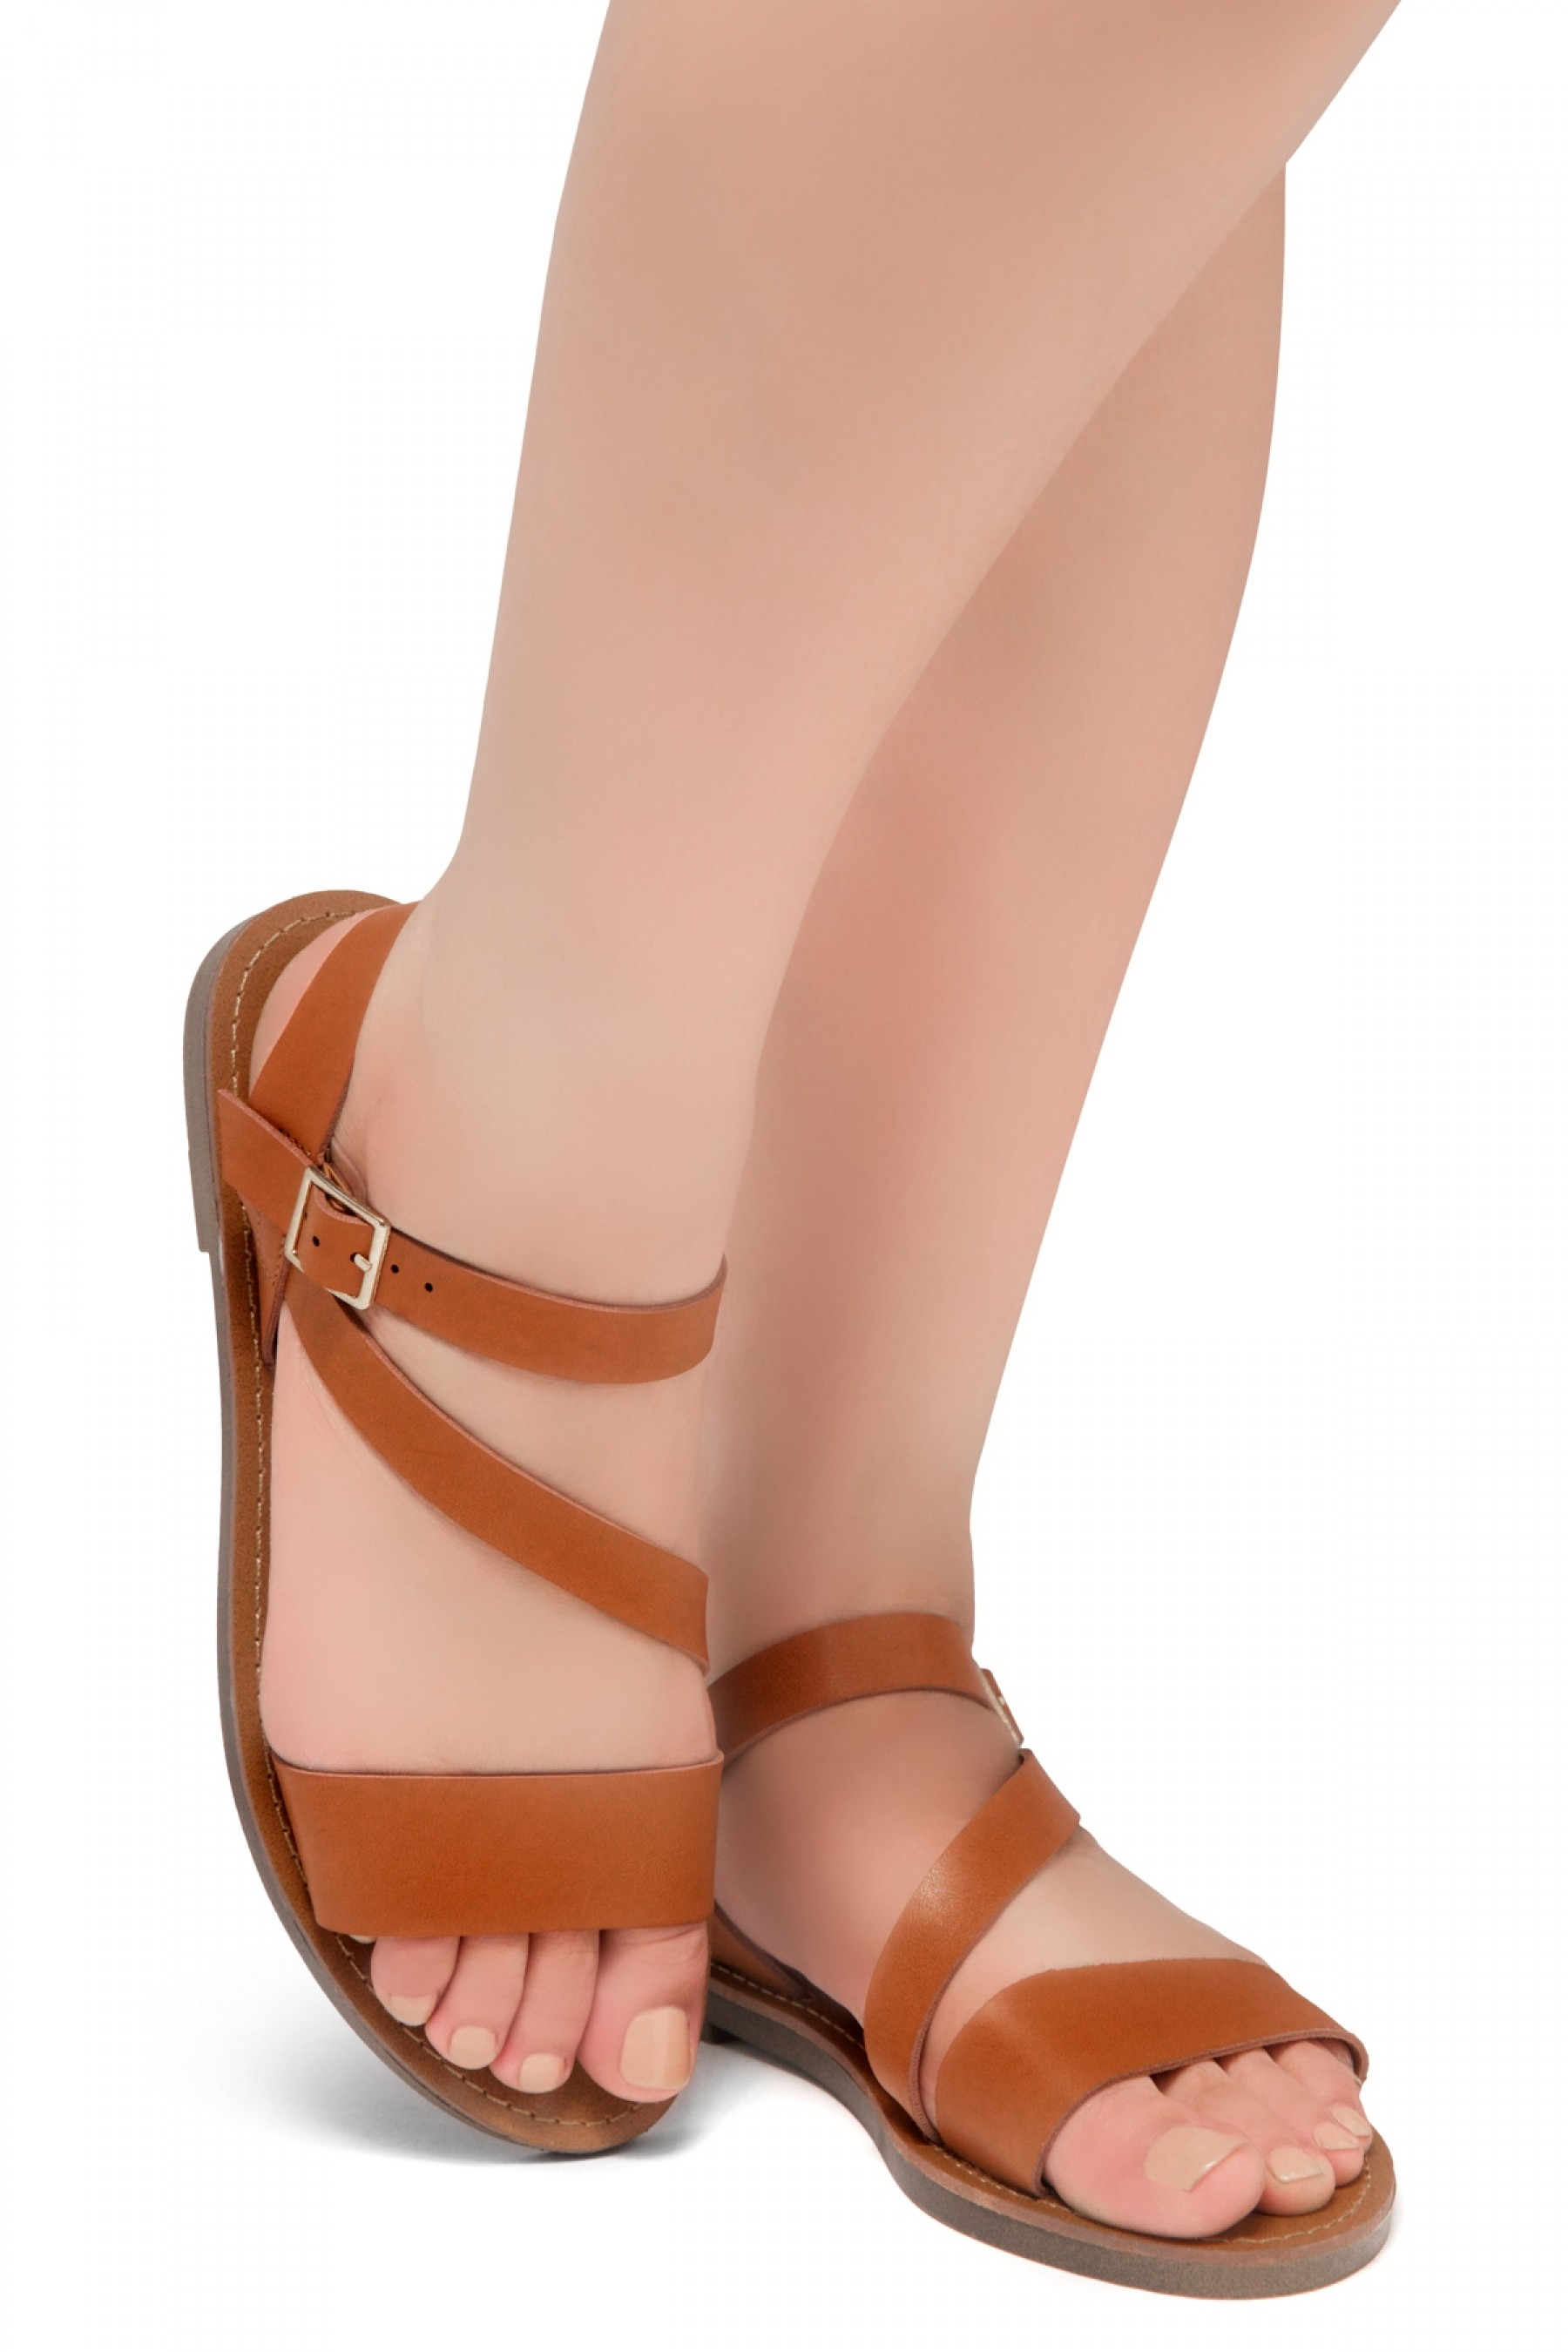 Shoe Land Marinna- Lightweight Flat Sandal with Faux Leather Straps Sandals (Cognac)